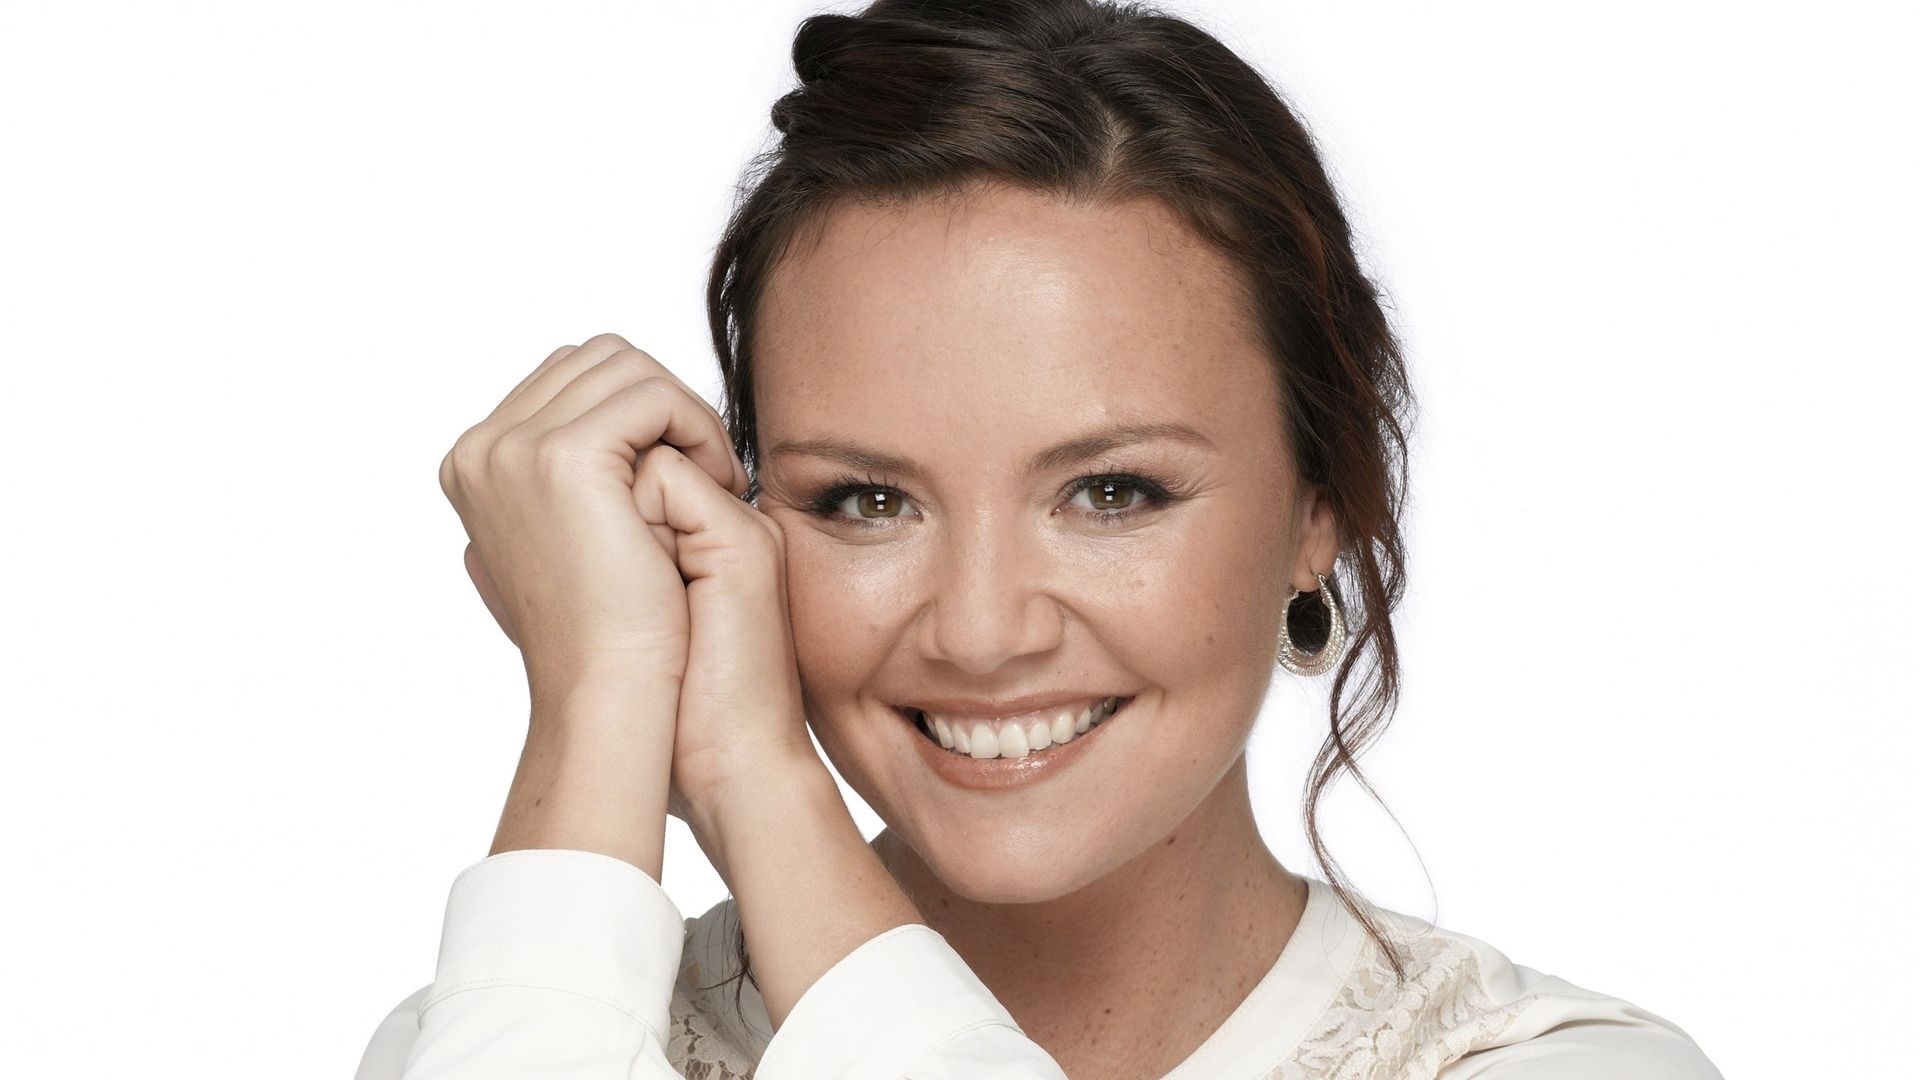 Pictures Of Charlie Brooks